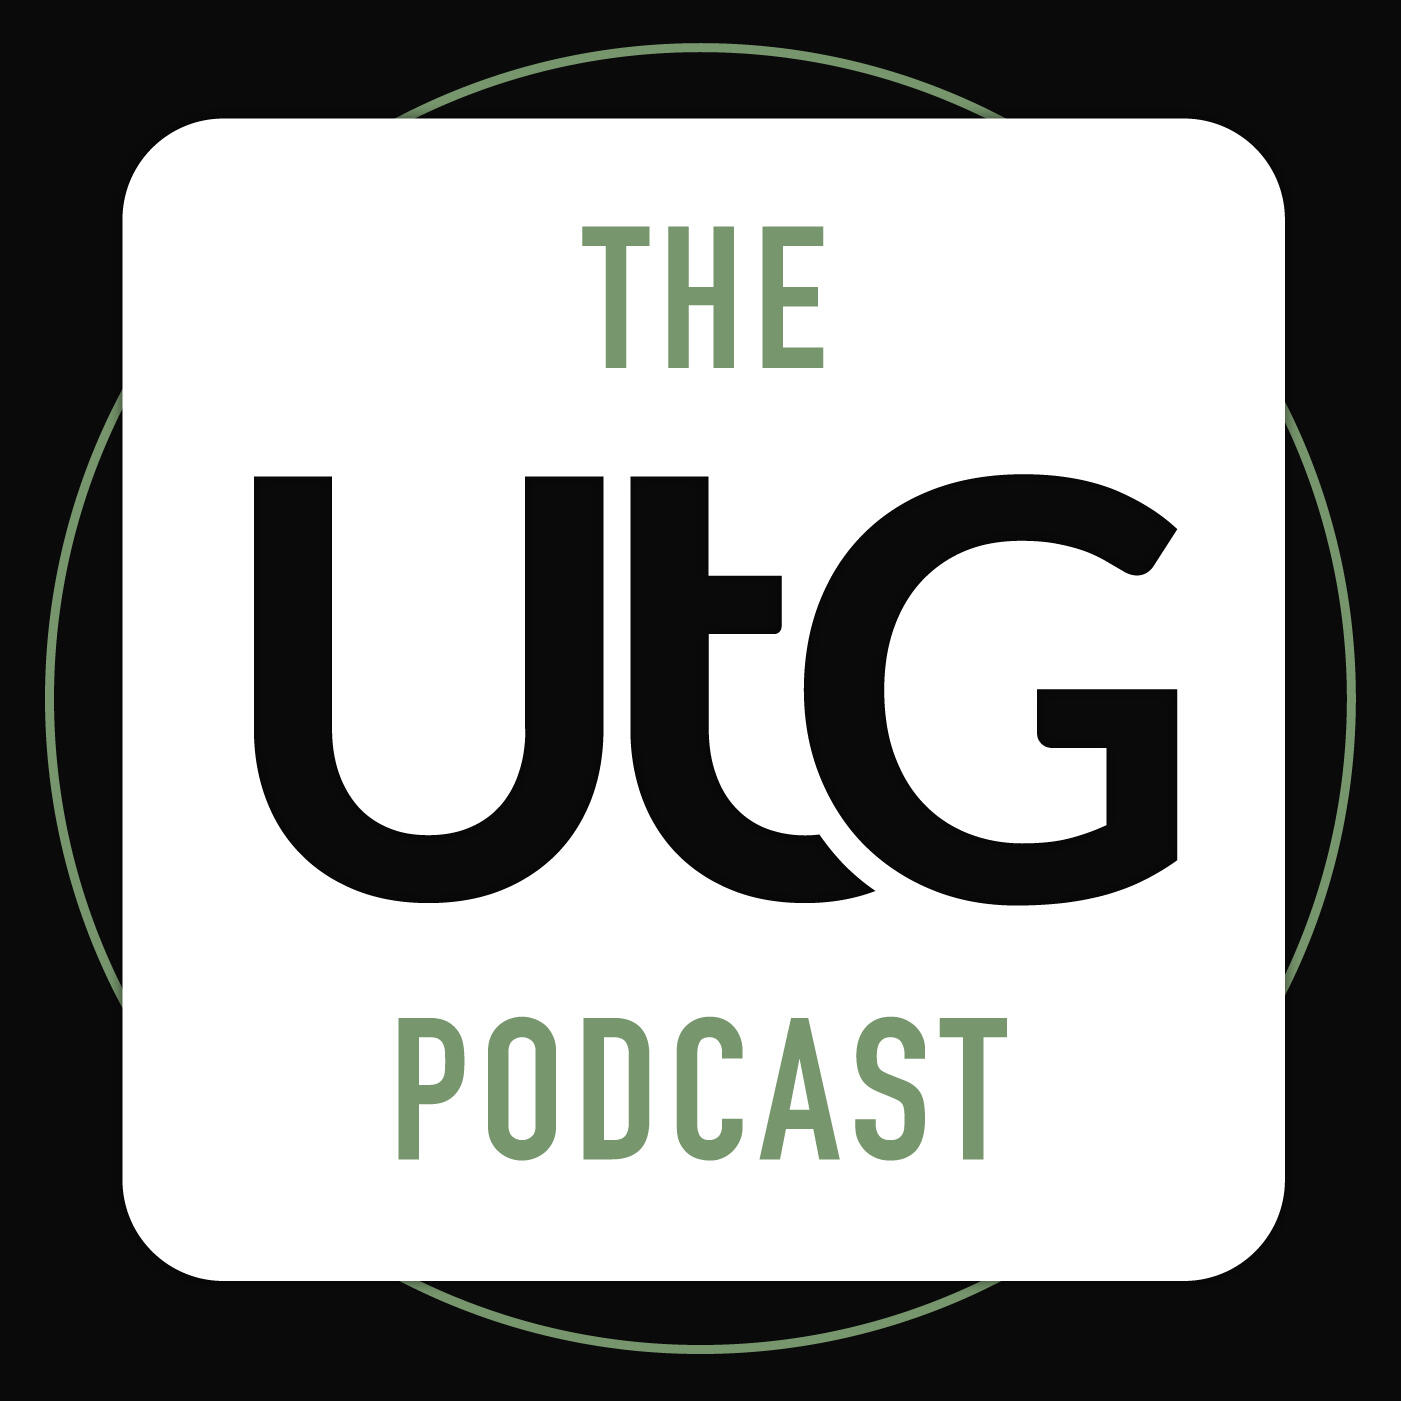 11: On Sharing the Gospel in Perth (with Gareth Edwards)